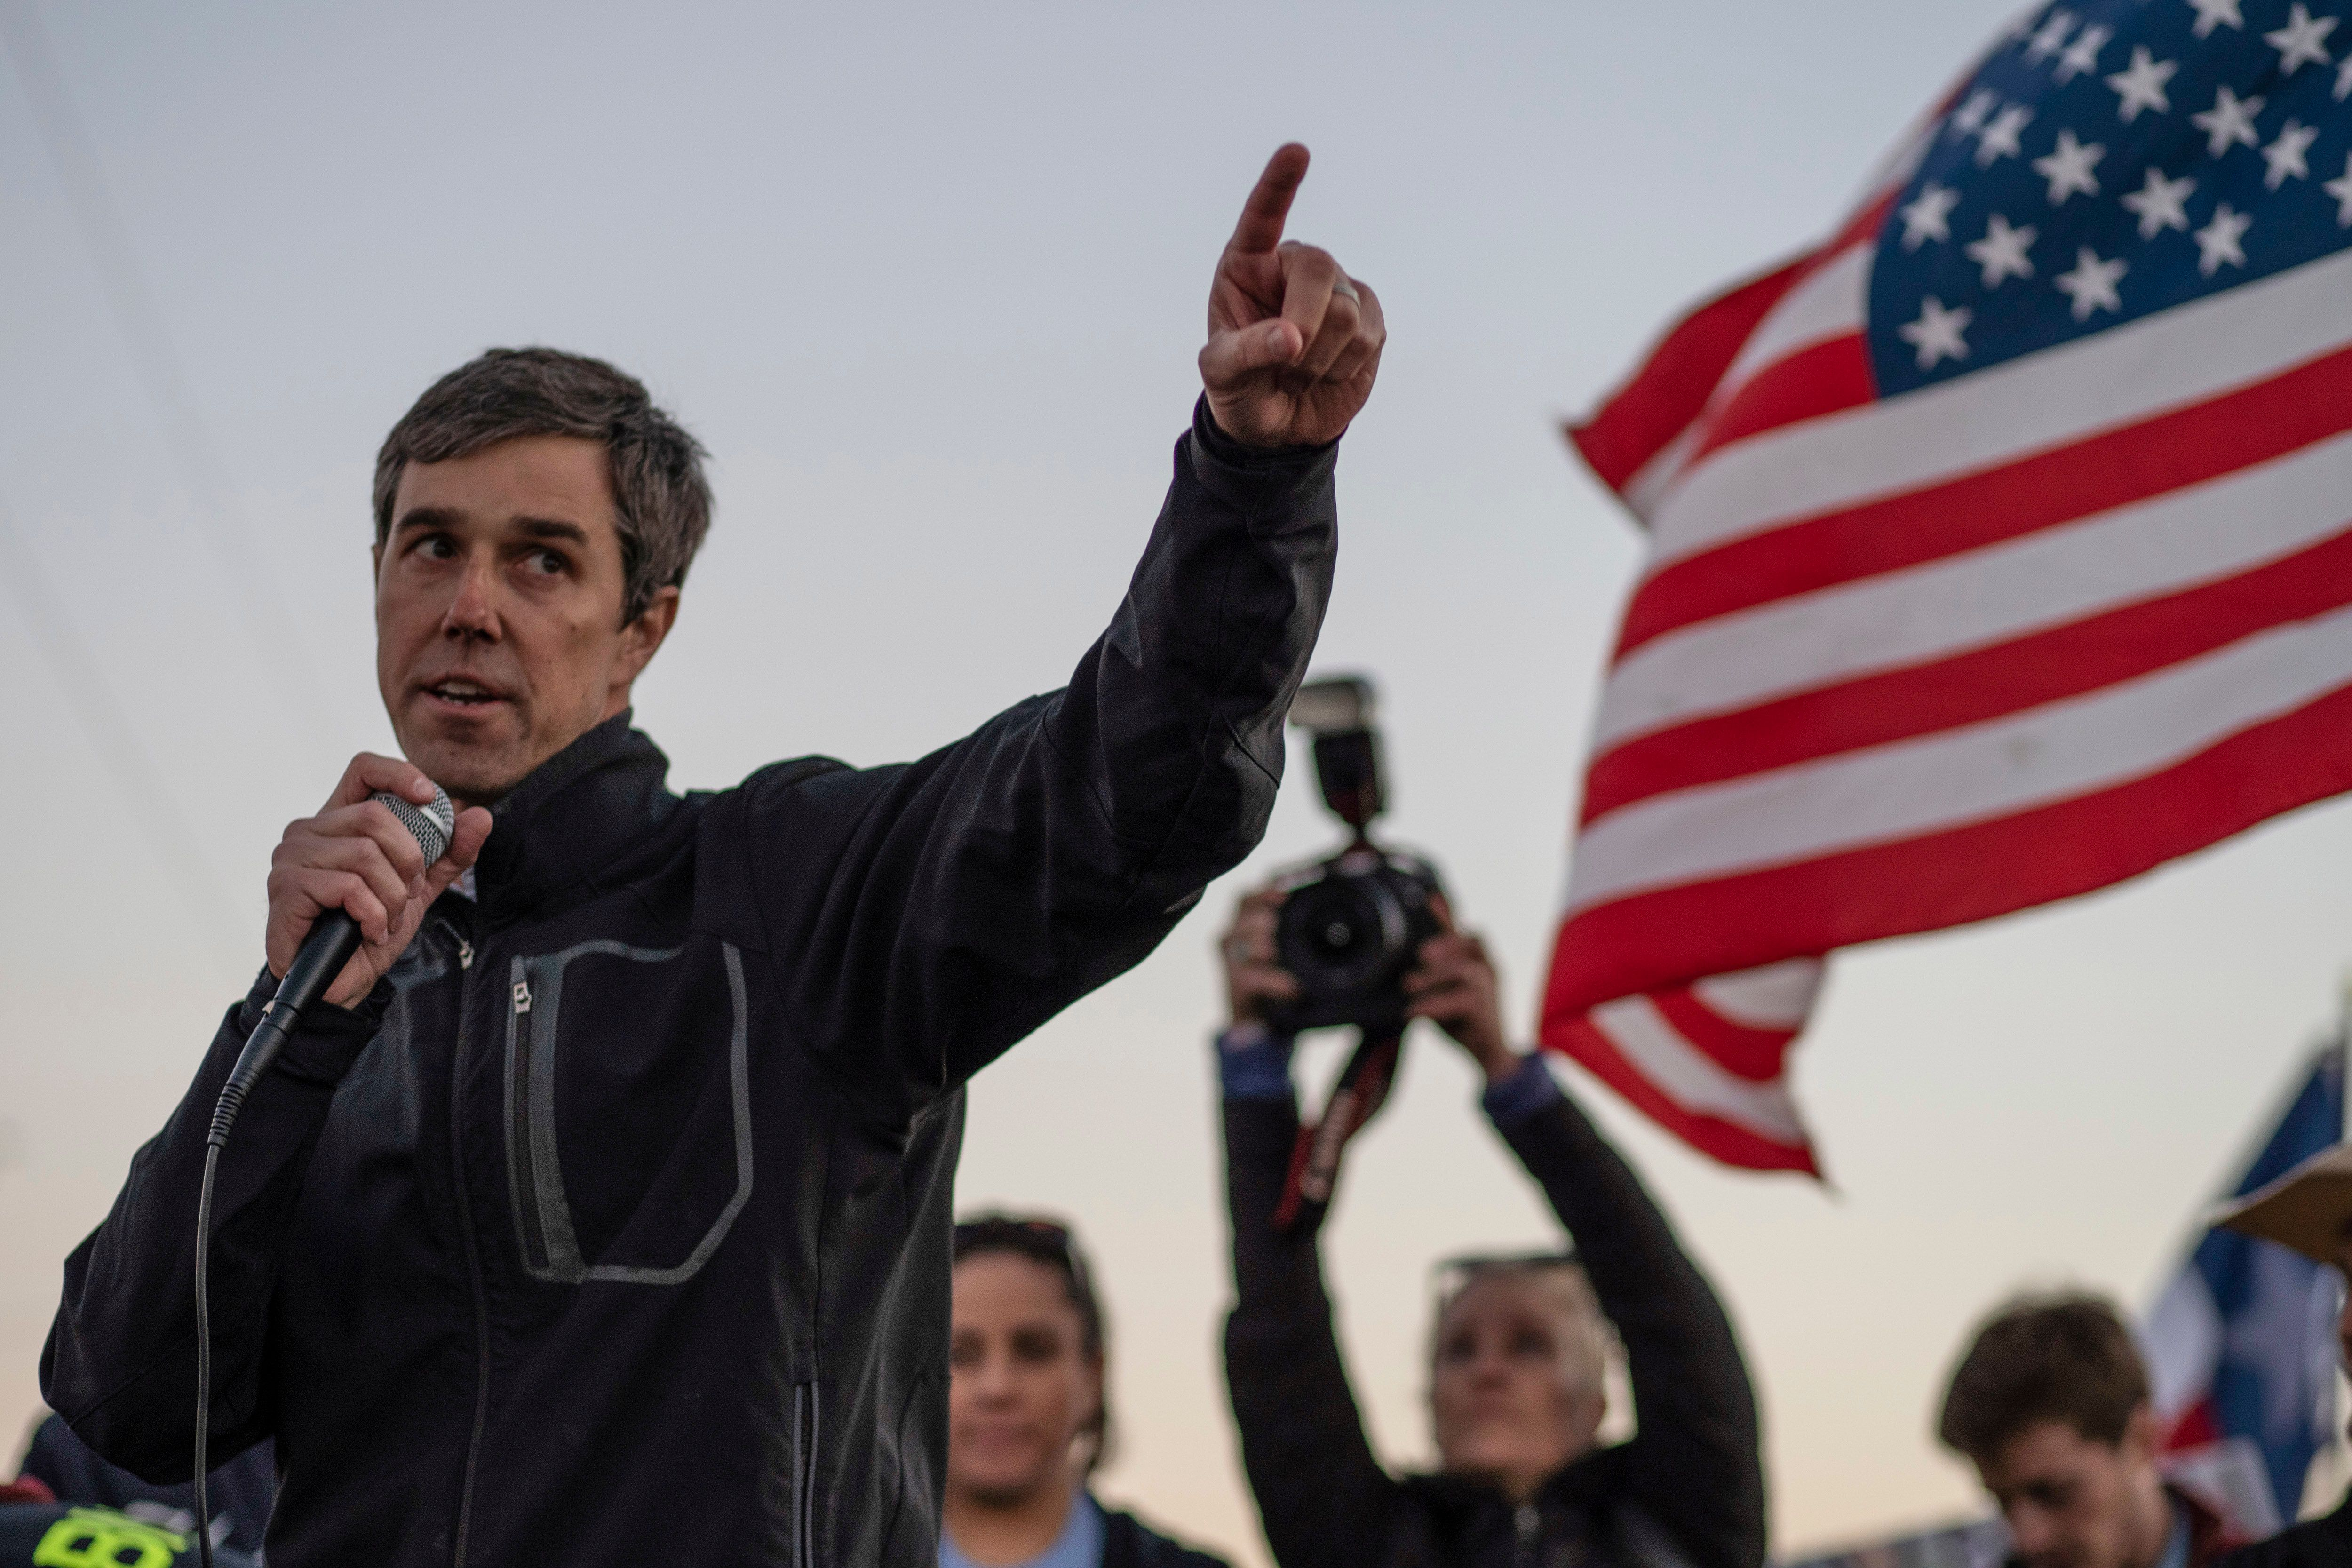 Former Texas Congressman Beto O'Rourke speaks to a crowd of marchers during the anti-Trump 'March for Truth' in El Paso, Texas, on February 11, 2019. - The march took place at the same time as US President Donald Trump pushed his politically explosive crusade to wall off the Mexican border at a rally in El Paso. (Photo by Paul Ratje / AFP)        (Photo credit should read PAUL RATJE/AFP/Getty Images)